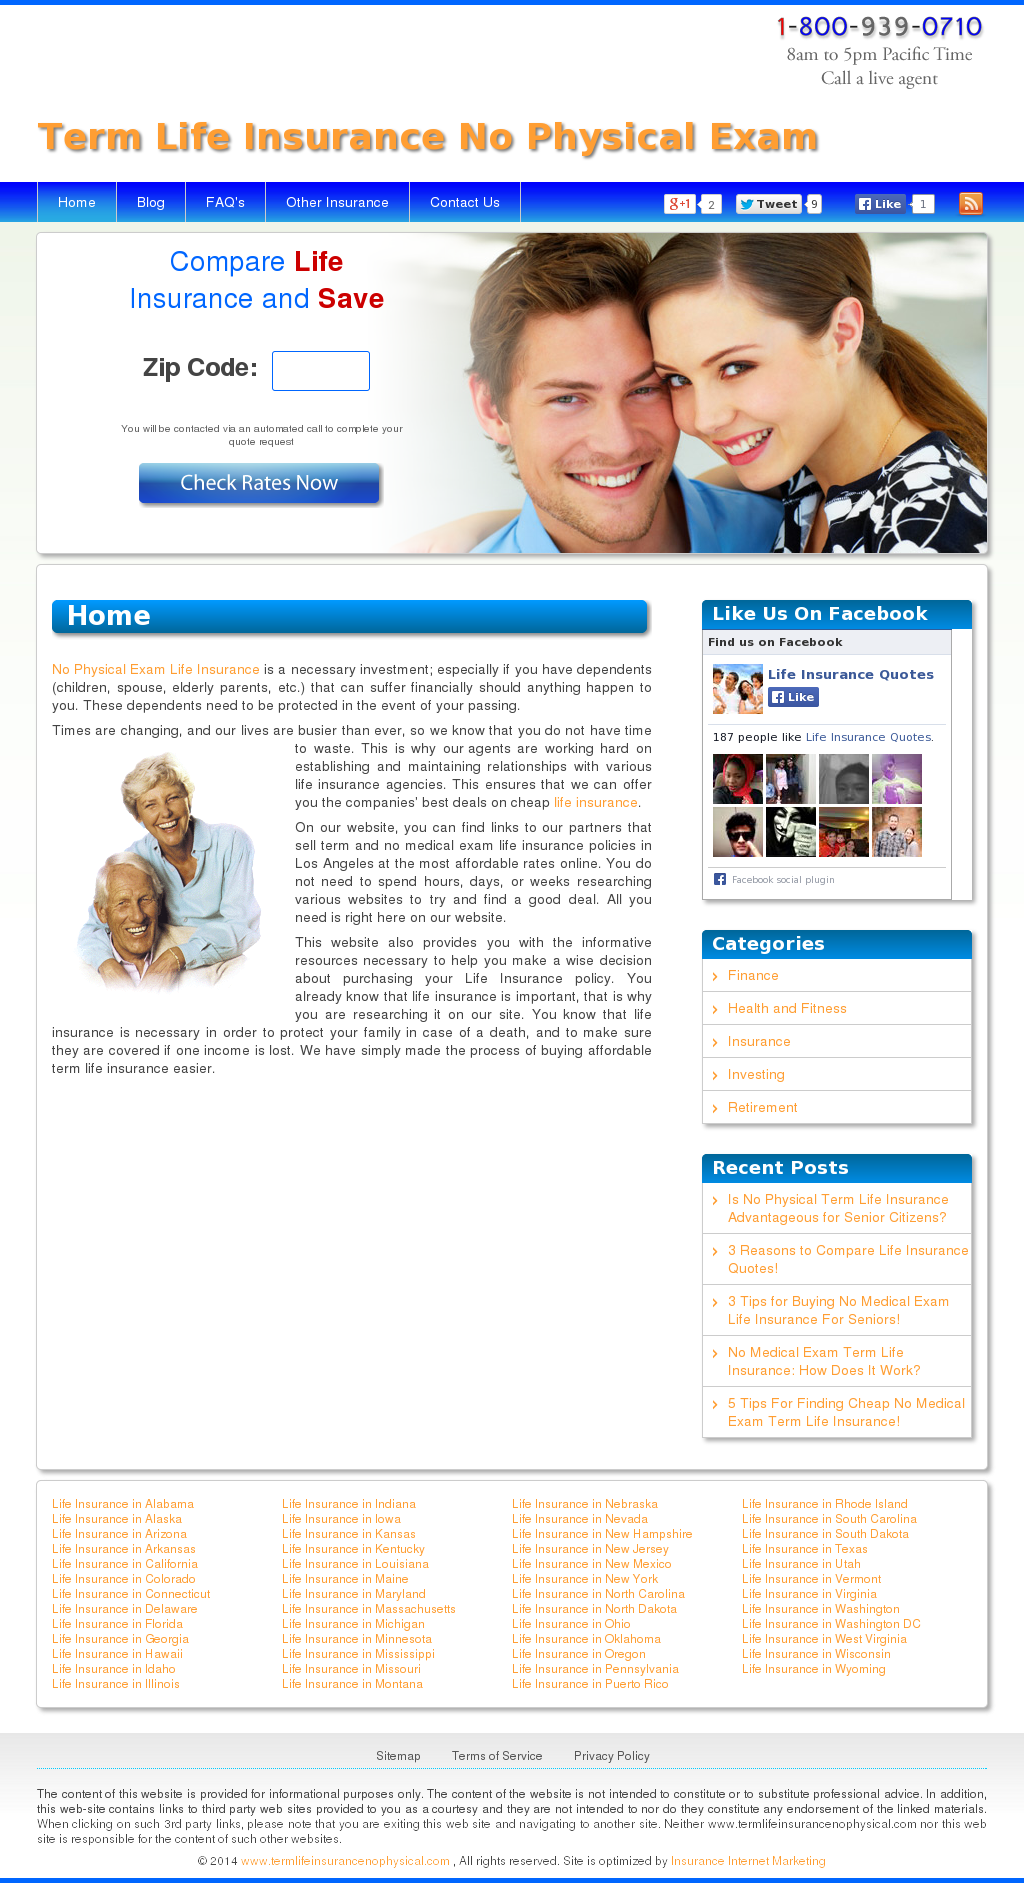 Term Life Insurance No Physical Exam Website History